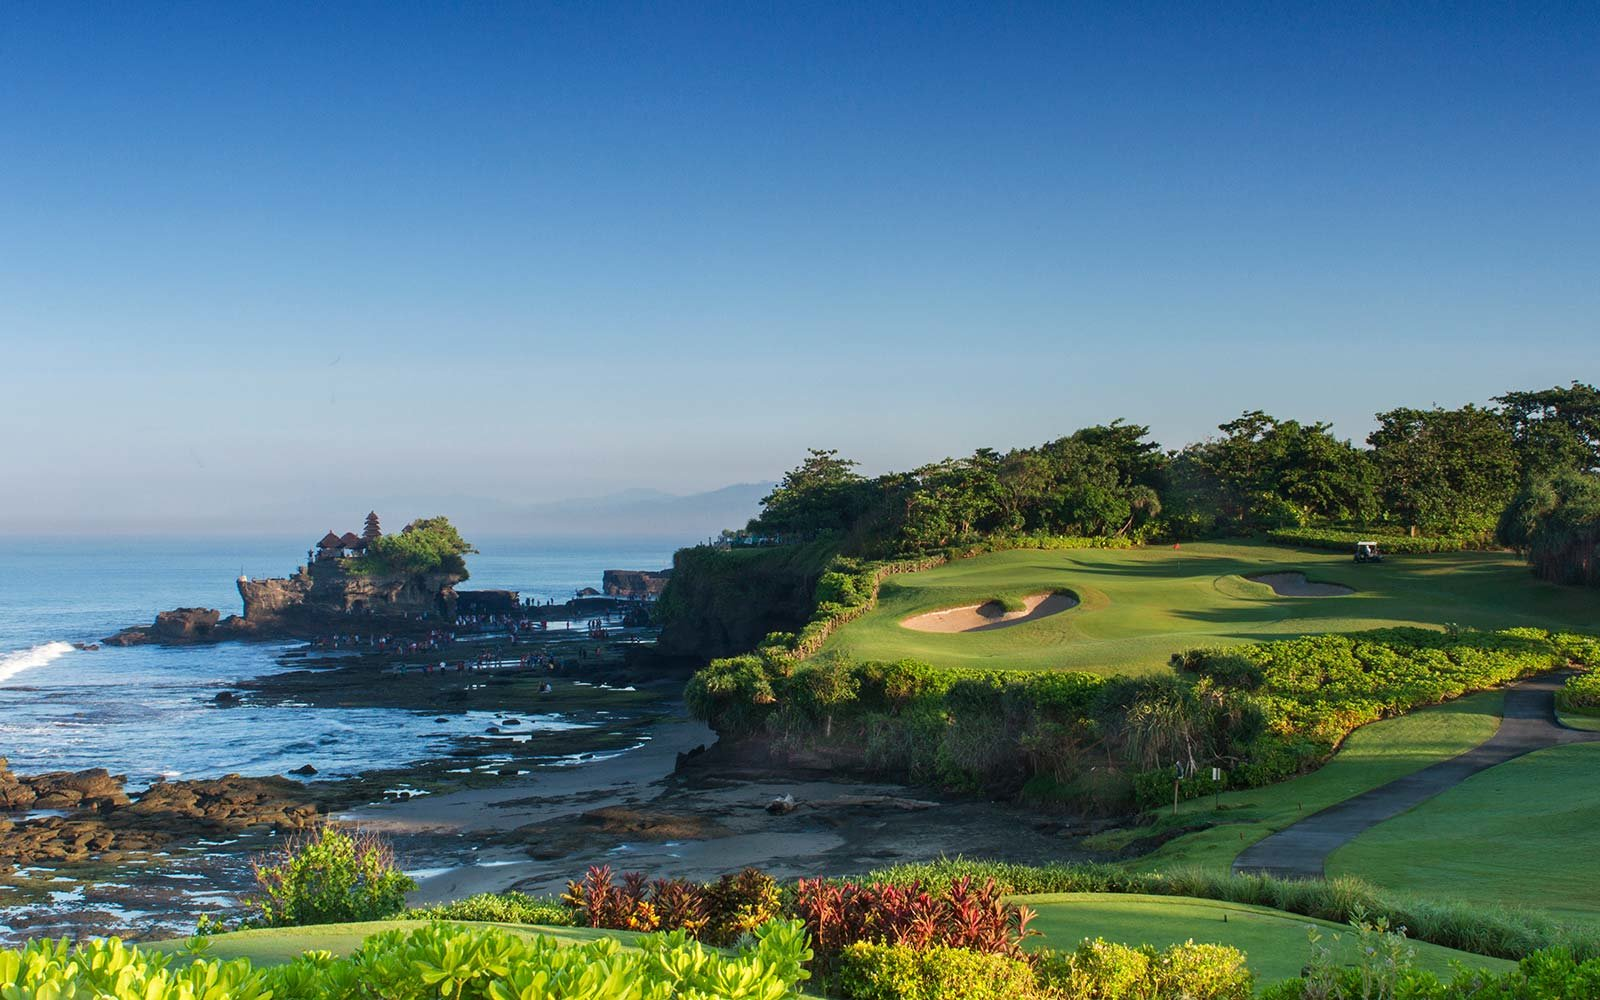 Trump Hotel golf course Tanah Lot temple Bali.